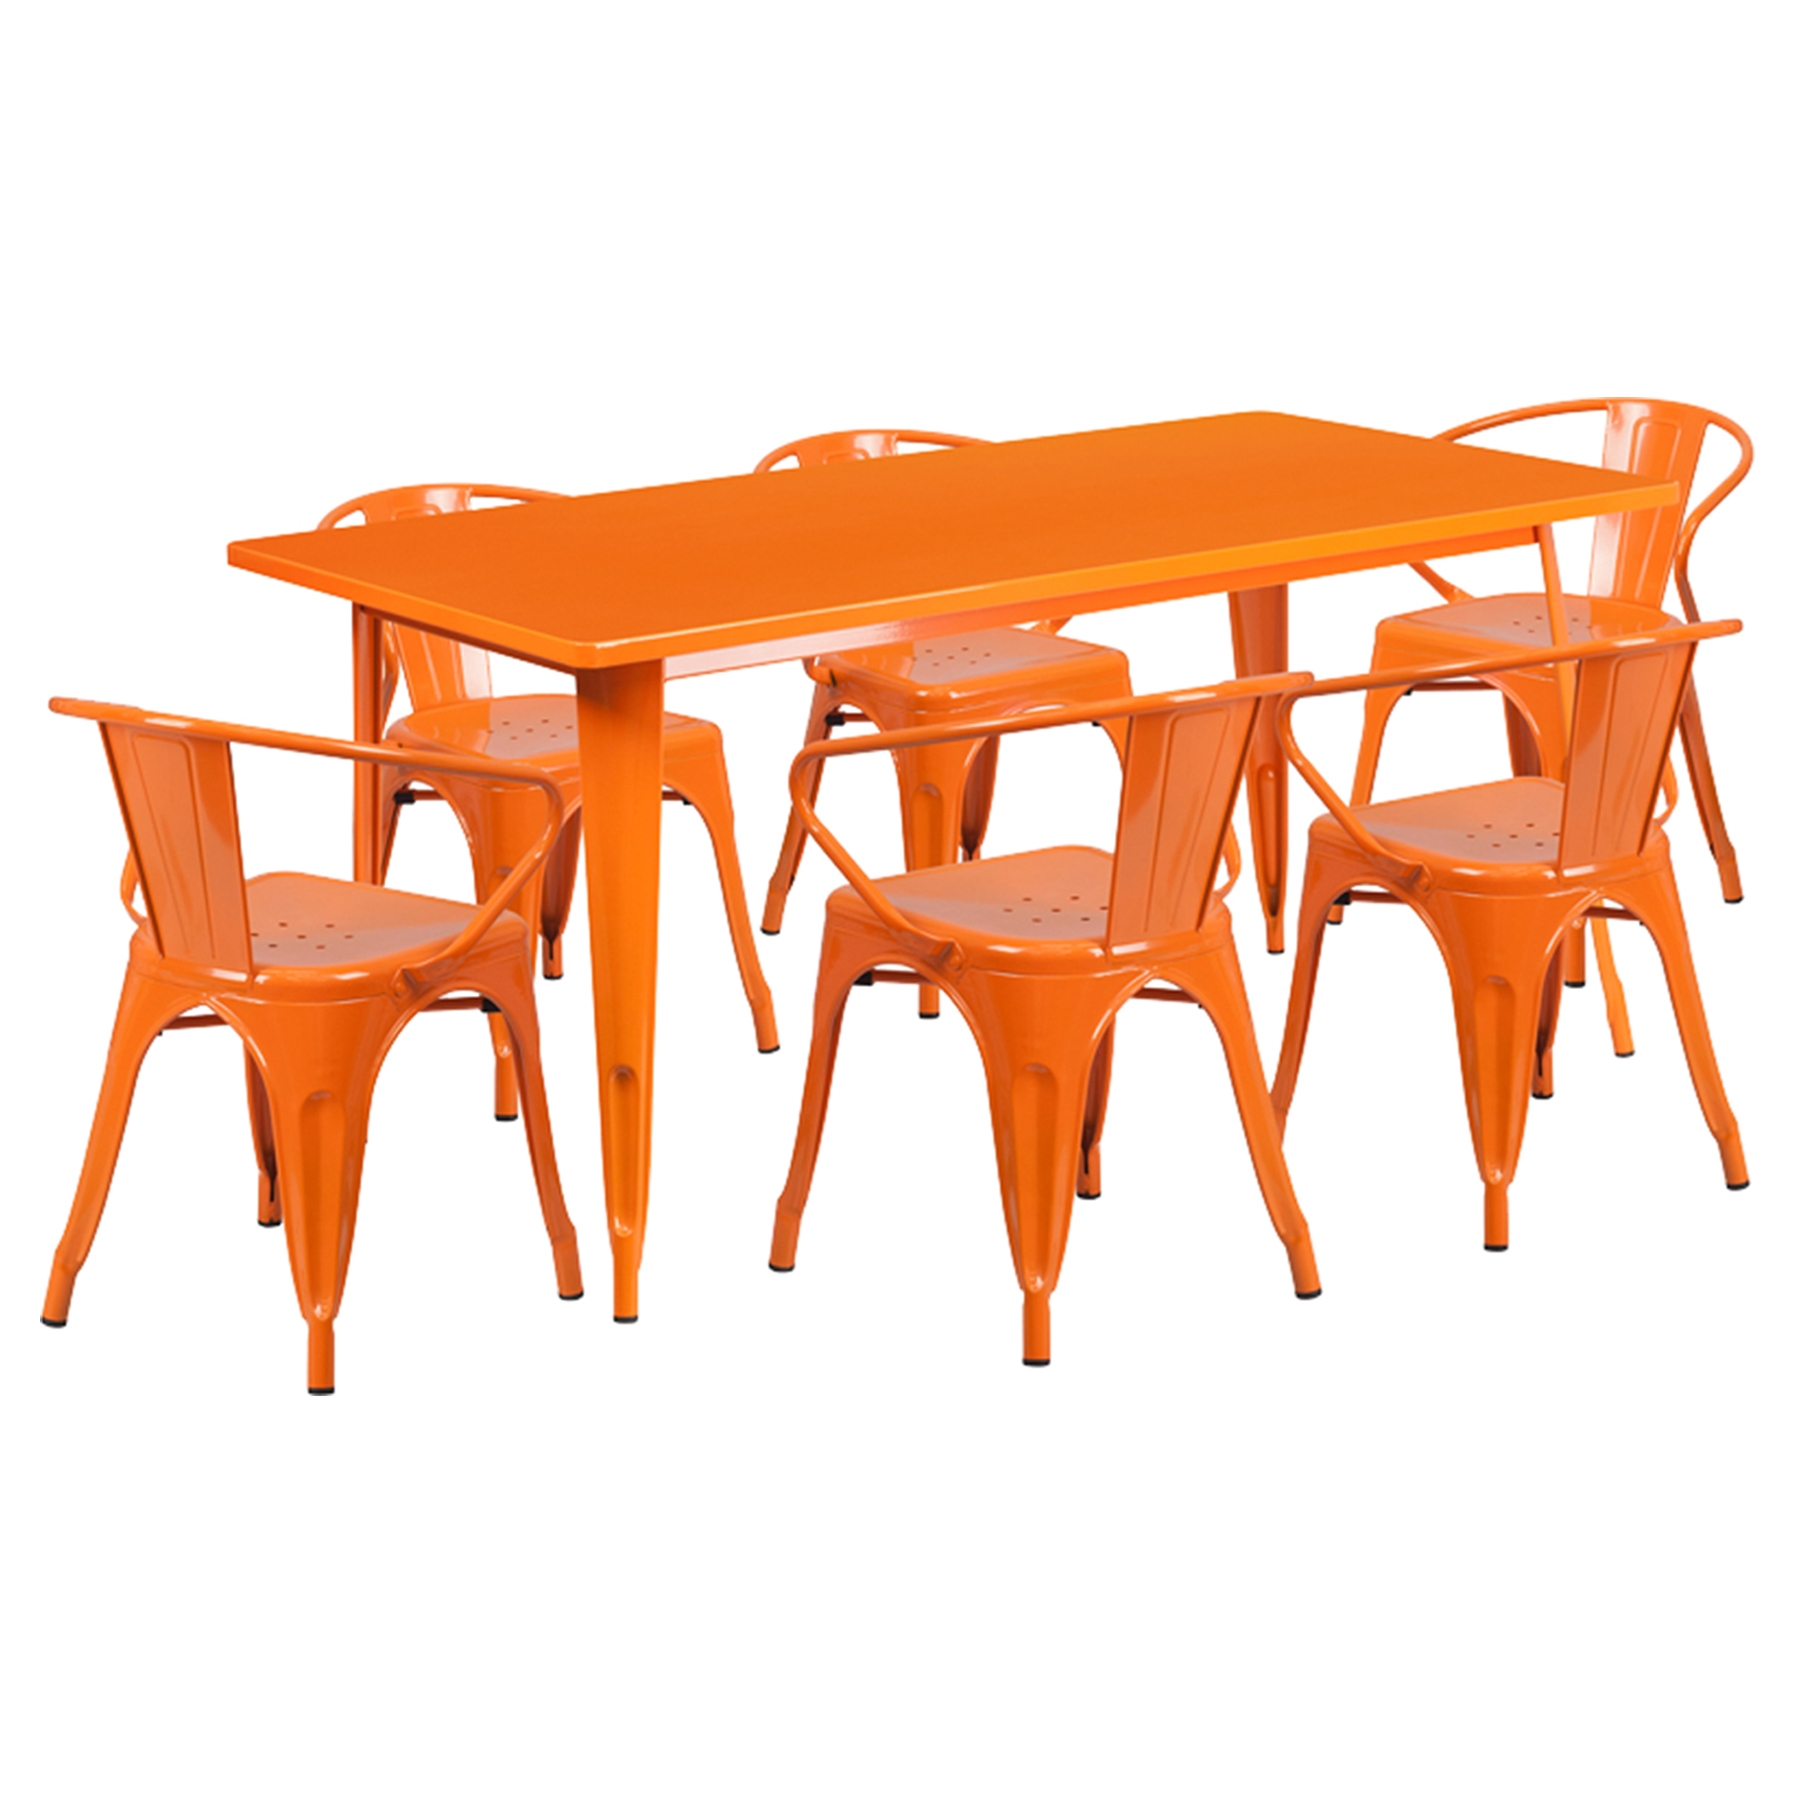 7 Pieces Rectangular Metal Table Set Arm Chairs Orange  : et ct005 6 70 or gg from www.dcgstores.com size 1000 x 1000 jpeg 259kB